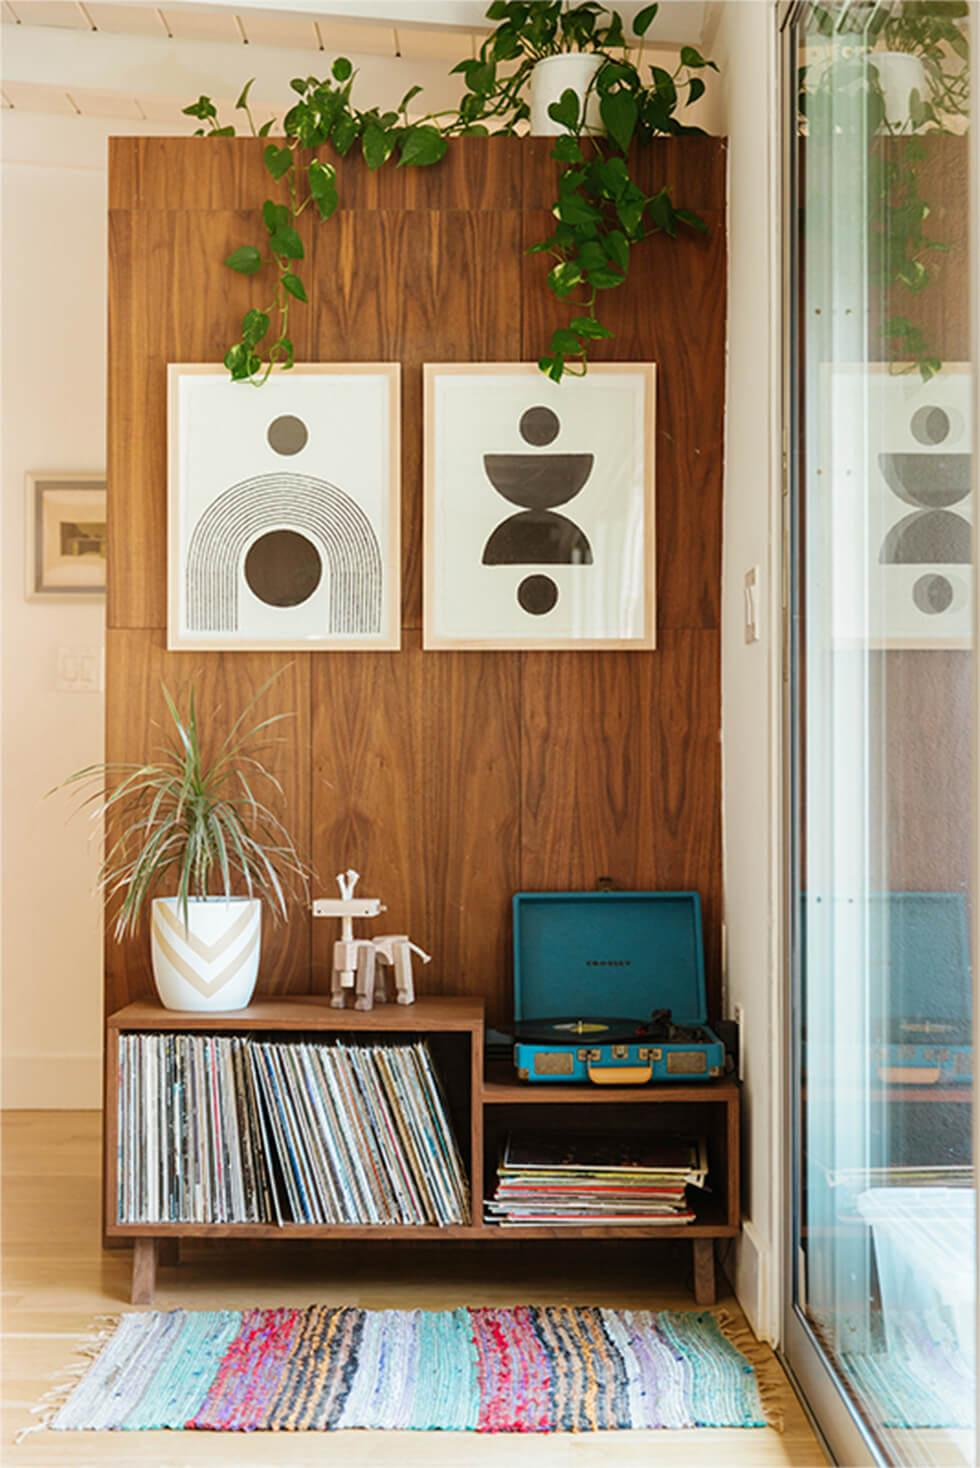 Vintage room with wood panels, mid-century art and indoor plants